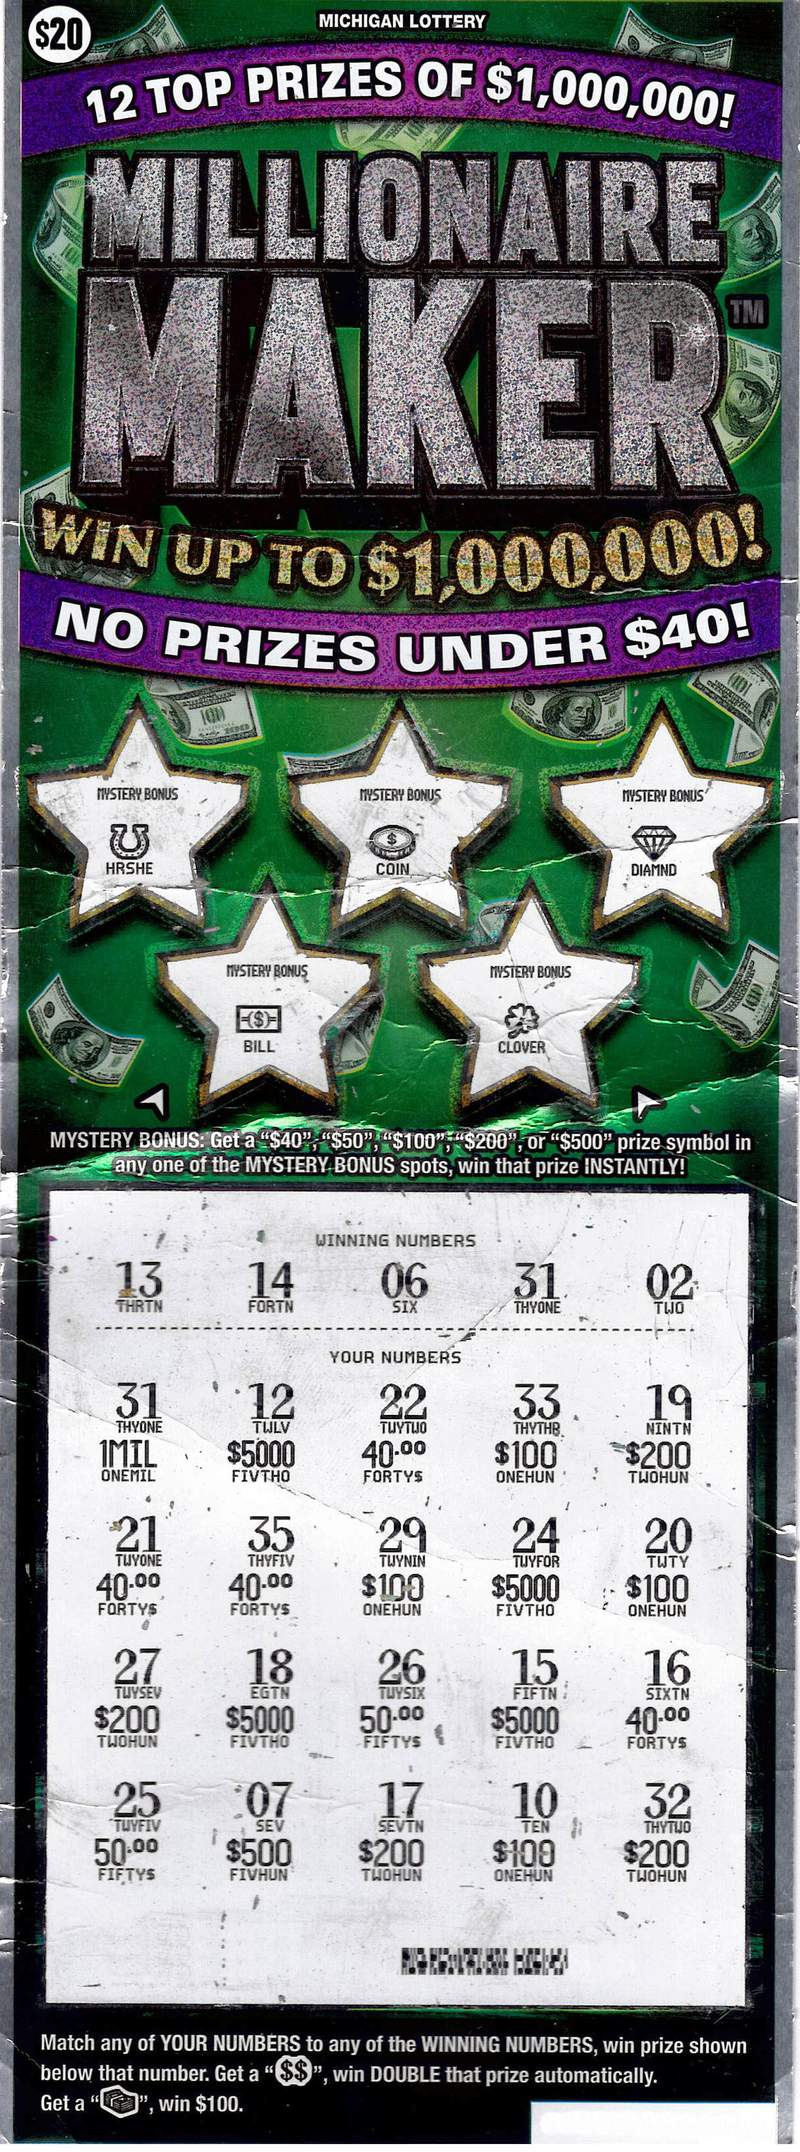 19-Year-Old Lenawee County Man Wins $1 Million Playing the Michigan Lottery's Millionaire Maker Instant Game